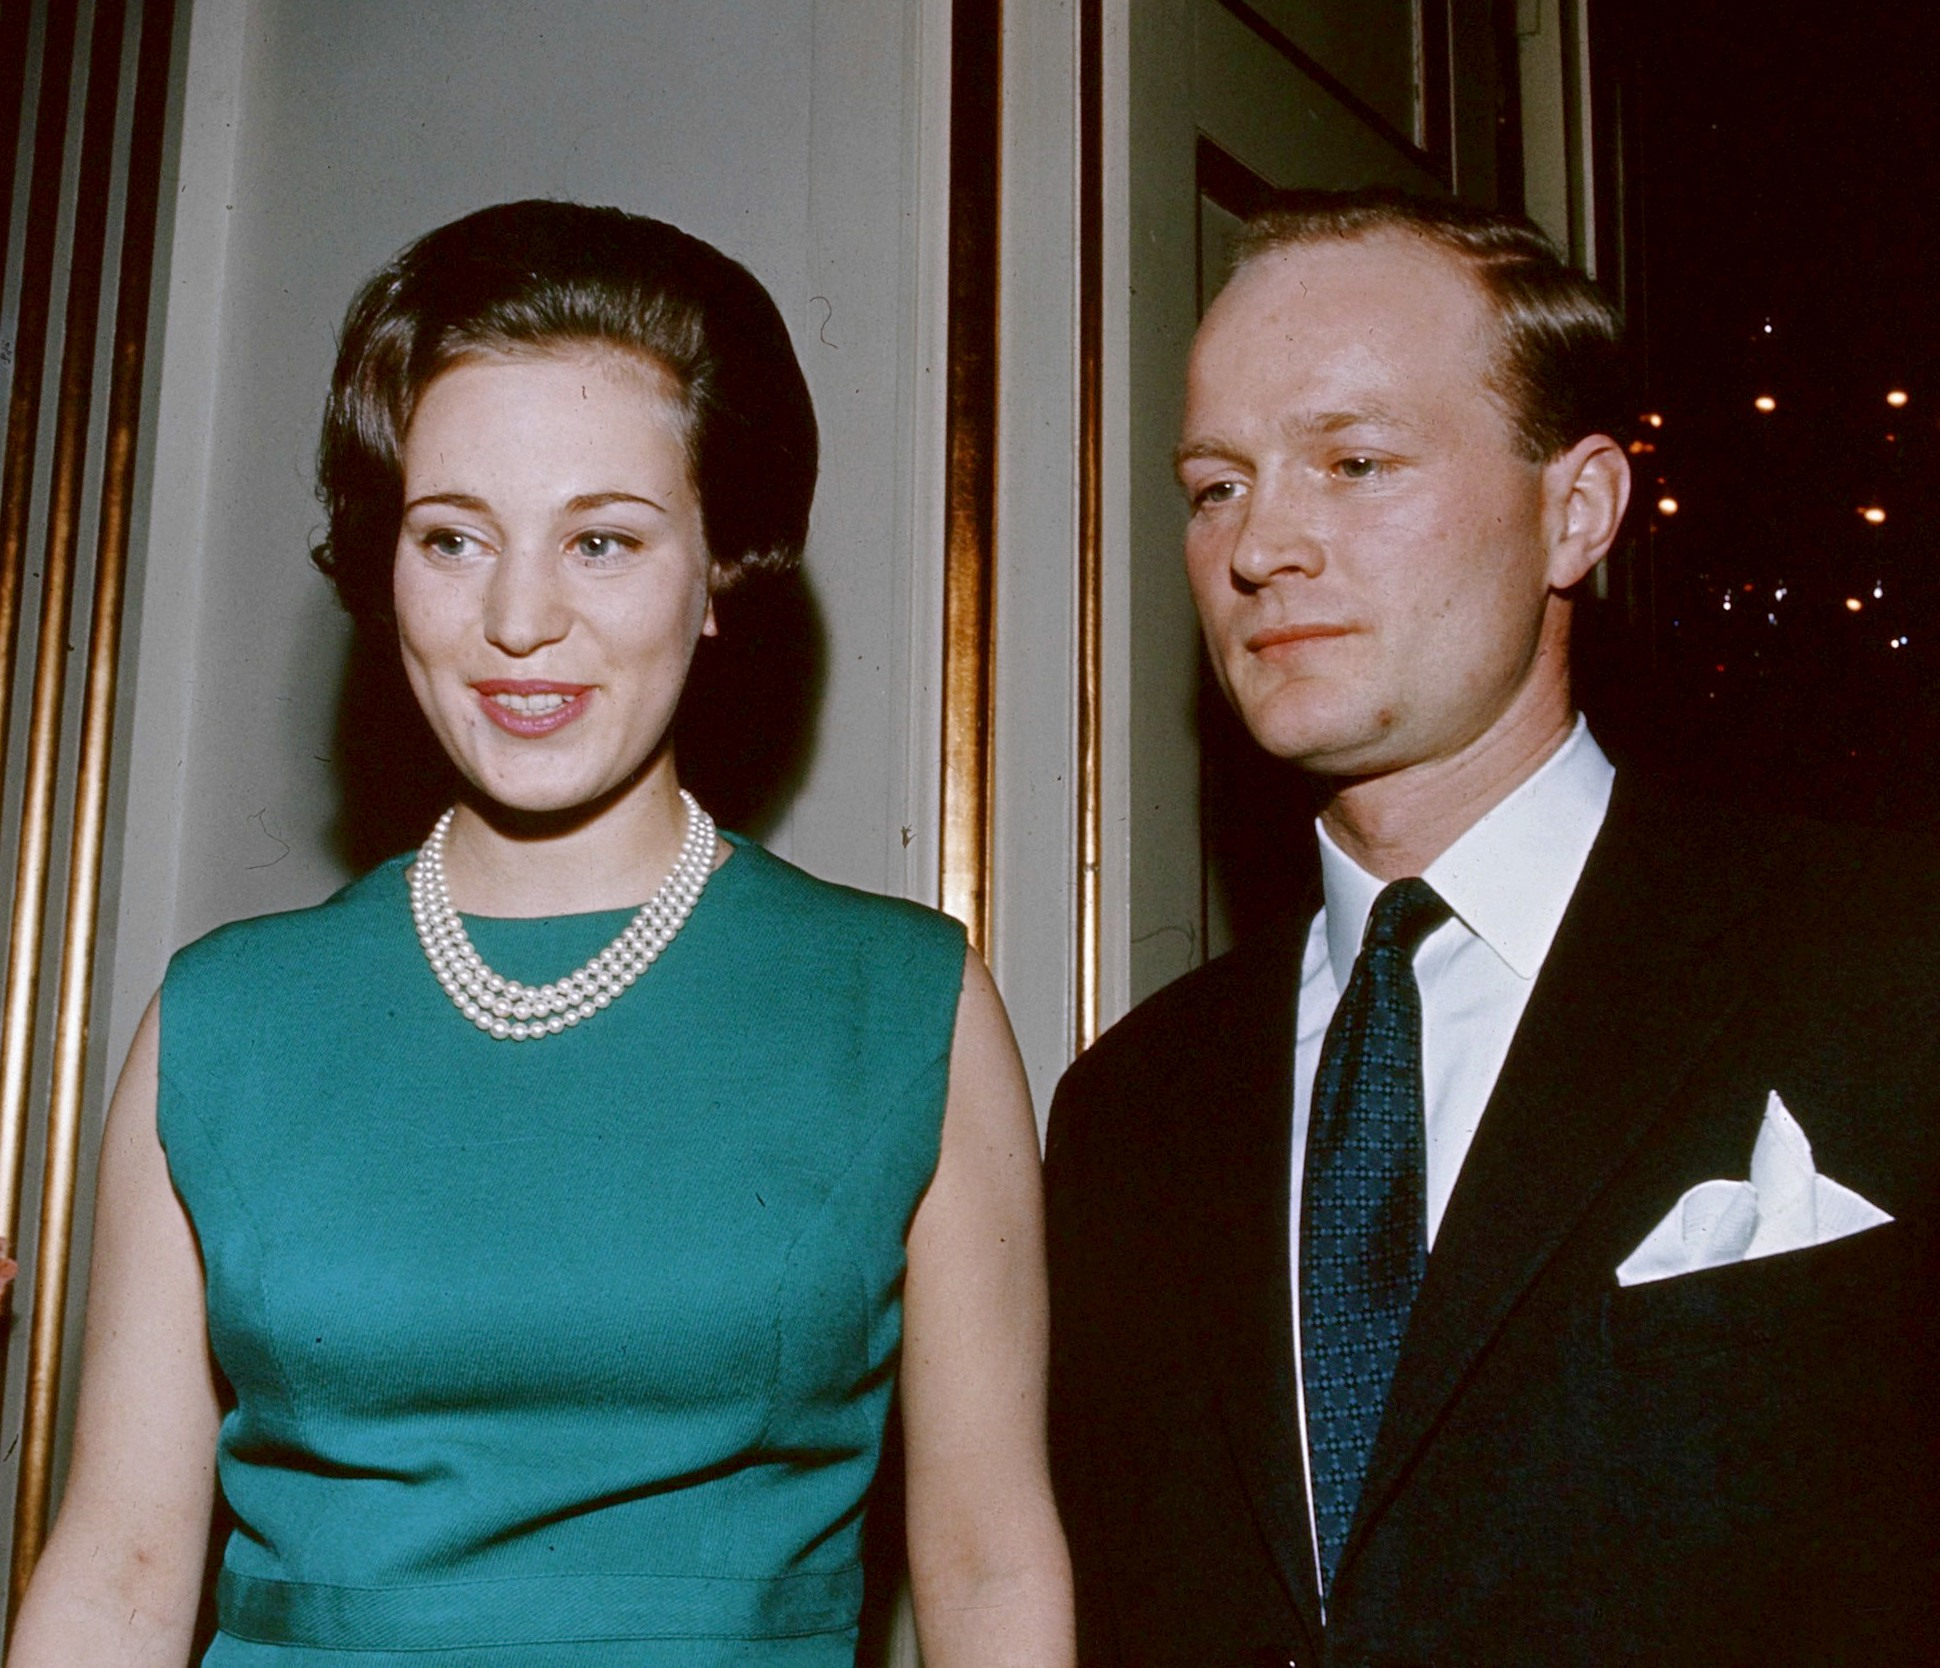 Princess Benedikte of Denmark with prince Richard.jpg